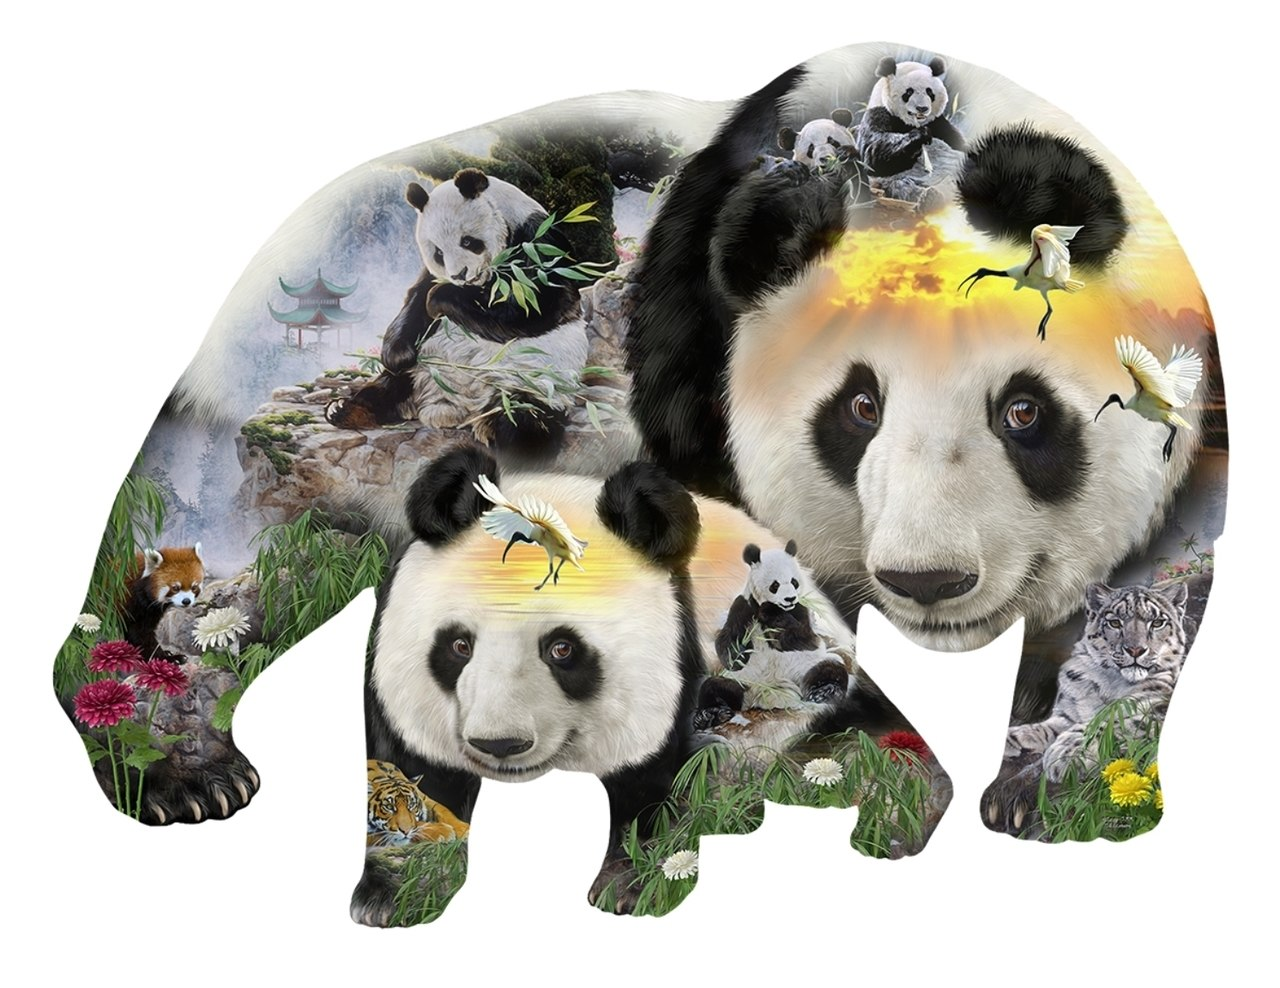 Panda-Monuim - 1000pc Jigsaw Puzzle By Sunsout  			  					NEW